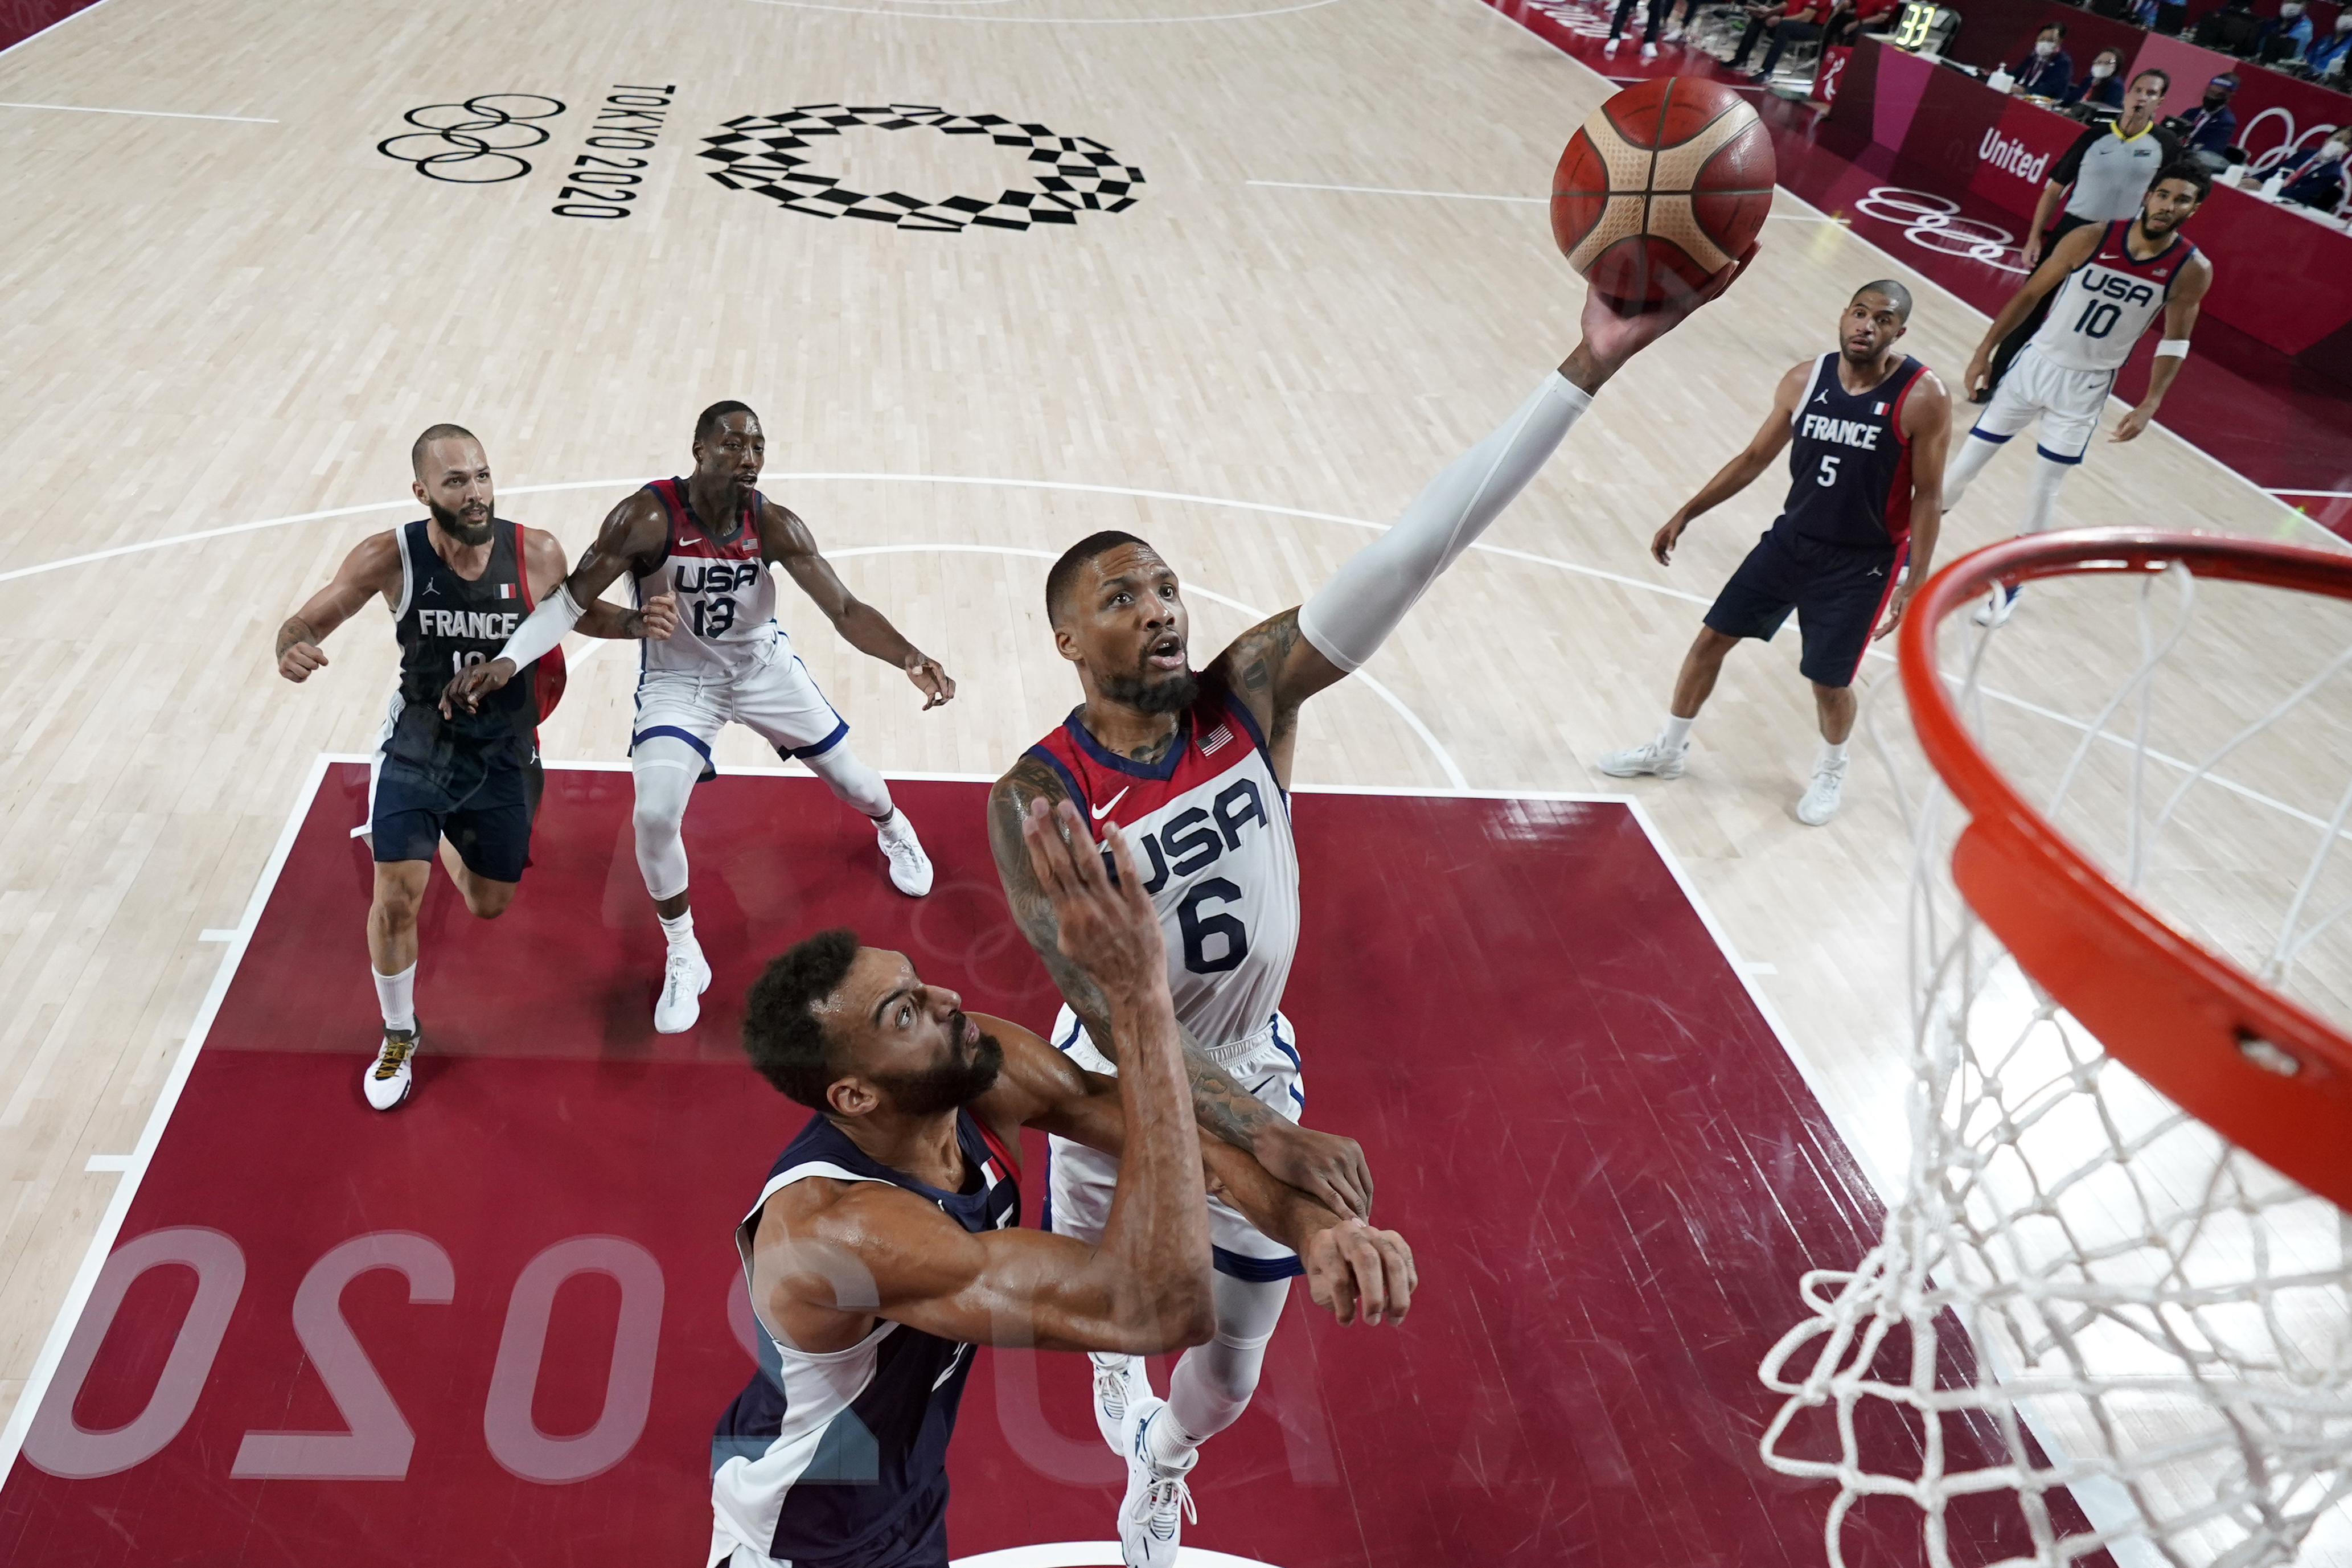 United States' Damian Lillard drives to the basket over France's Rudy Gobert